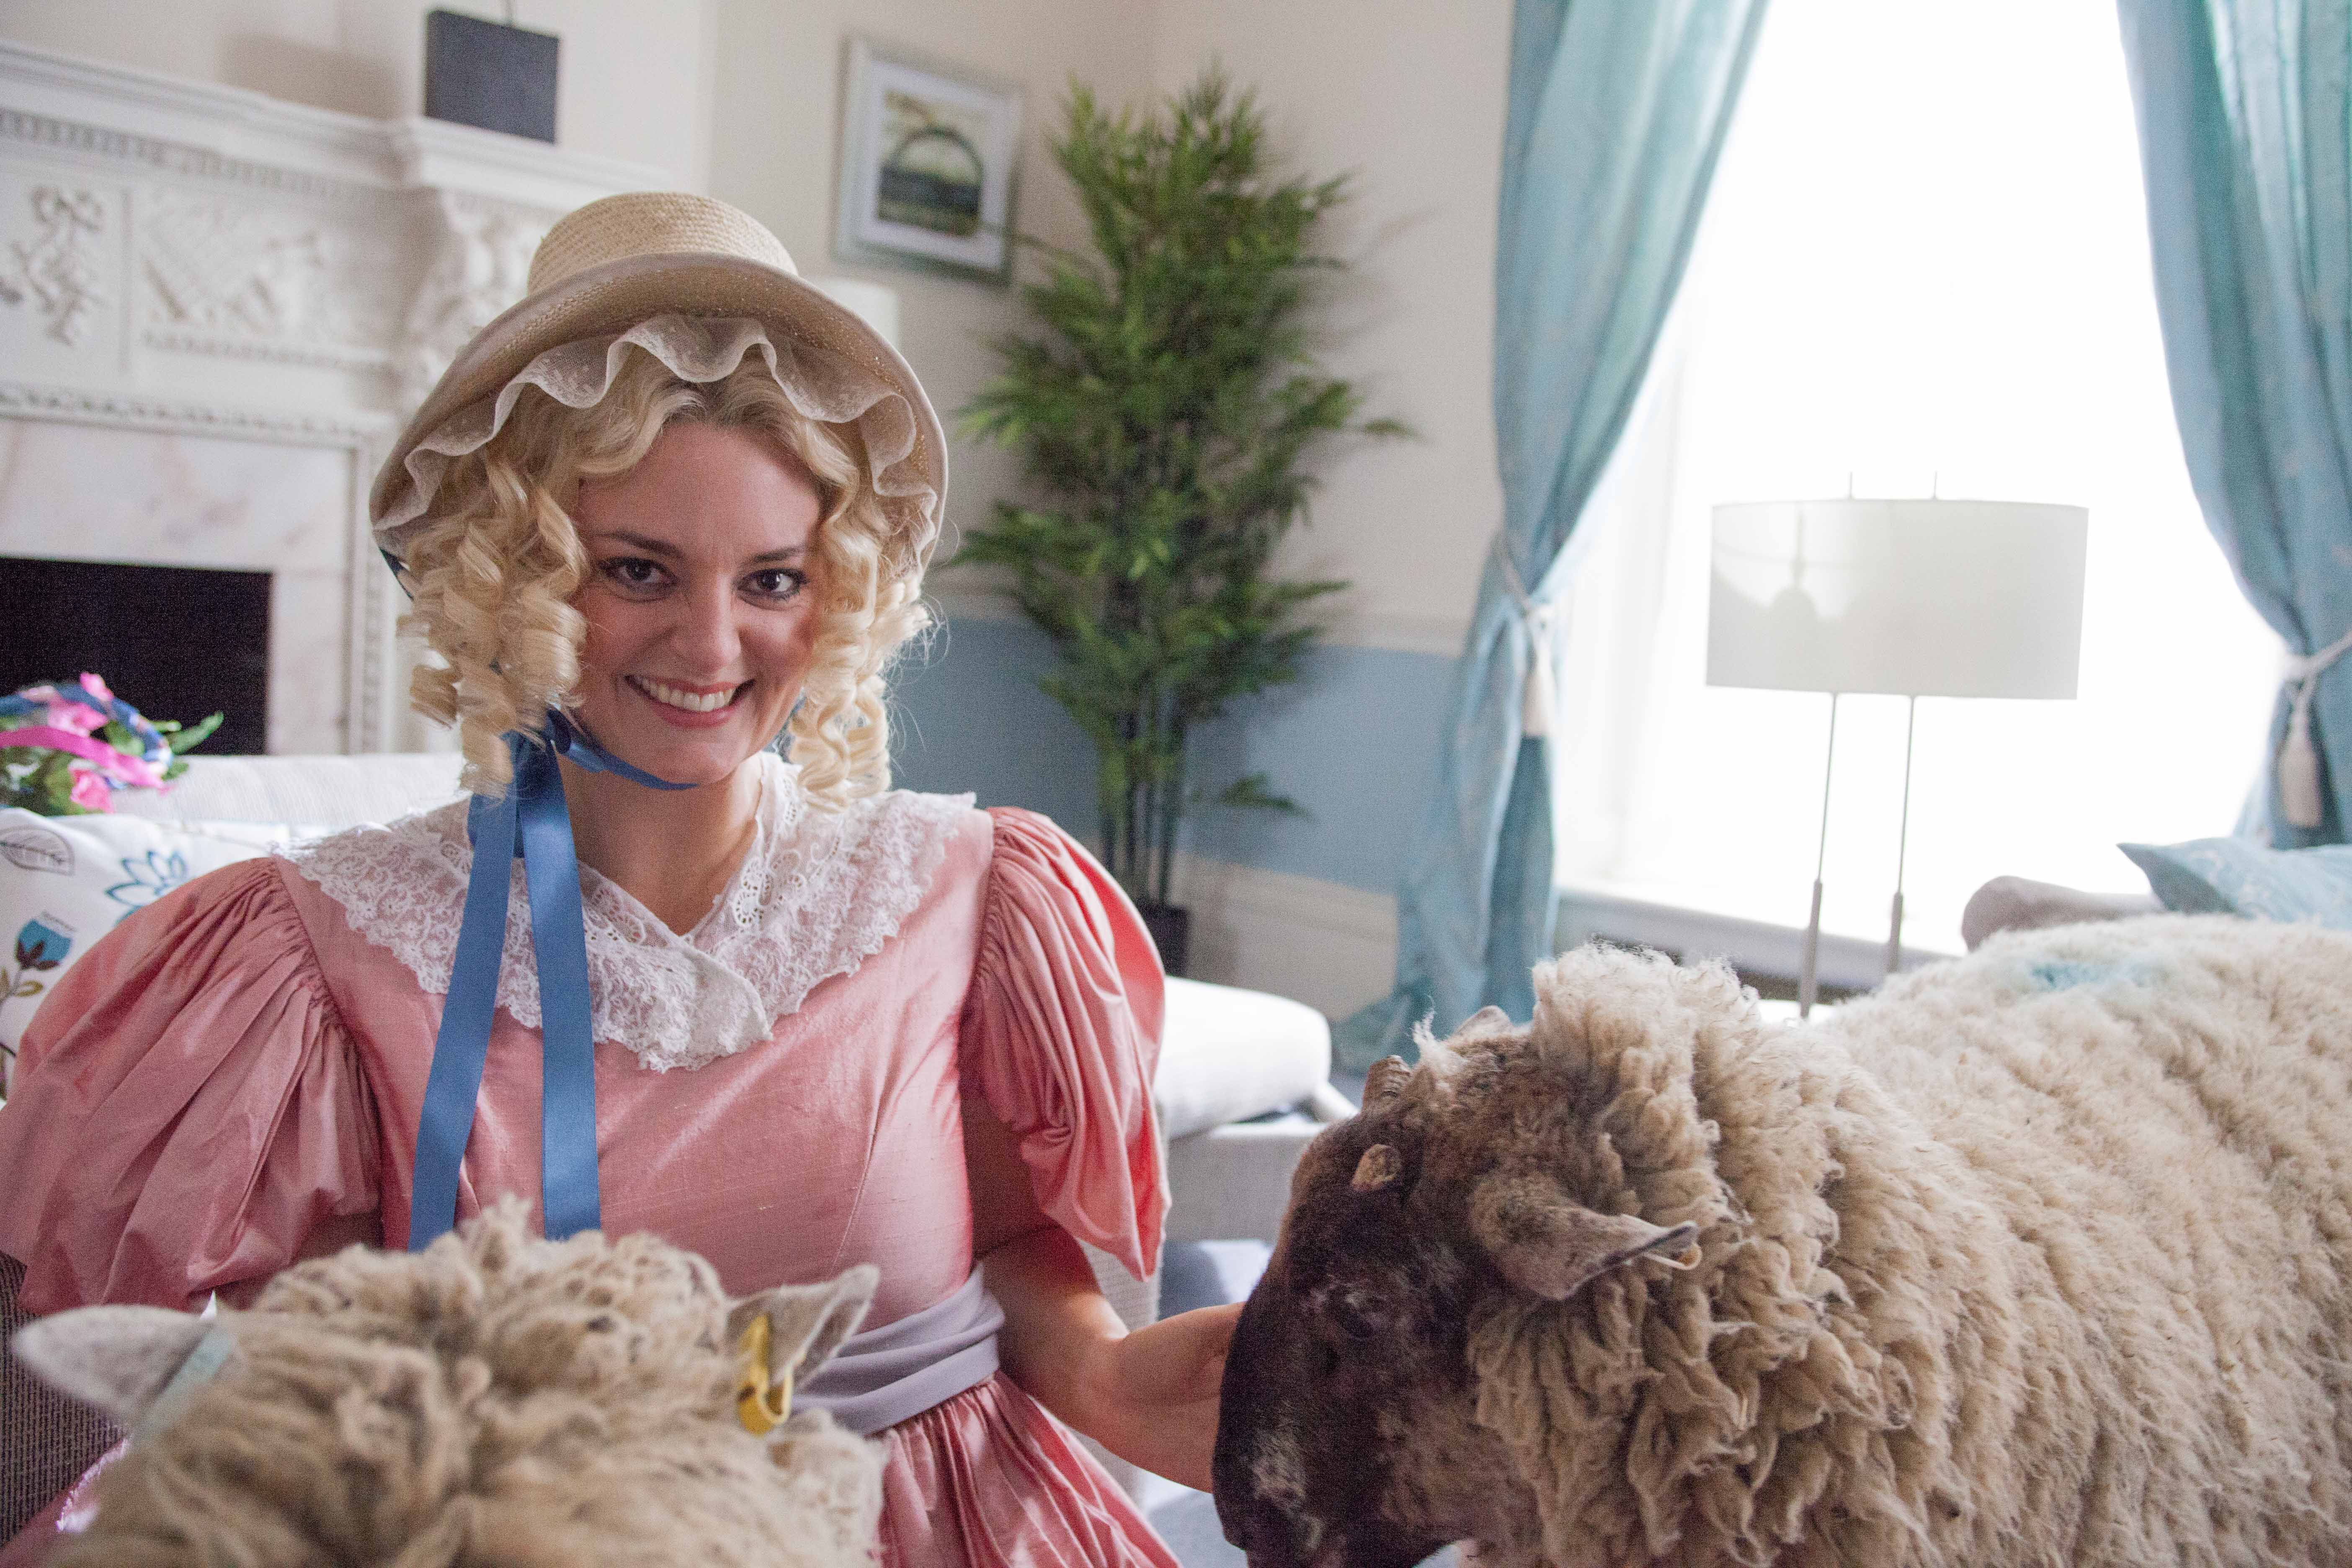 Psychobitches, Series 02, Episode 02, Morgana Robinson as Little Bo Peep